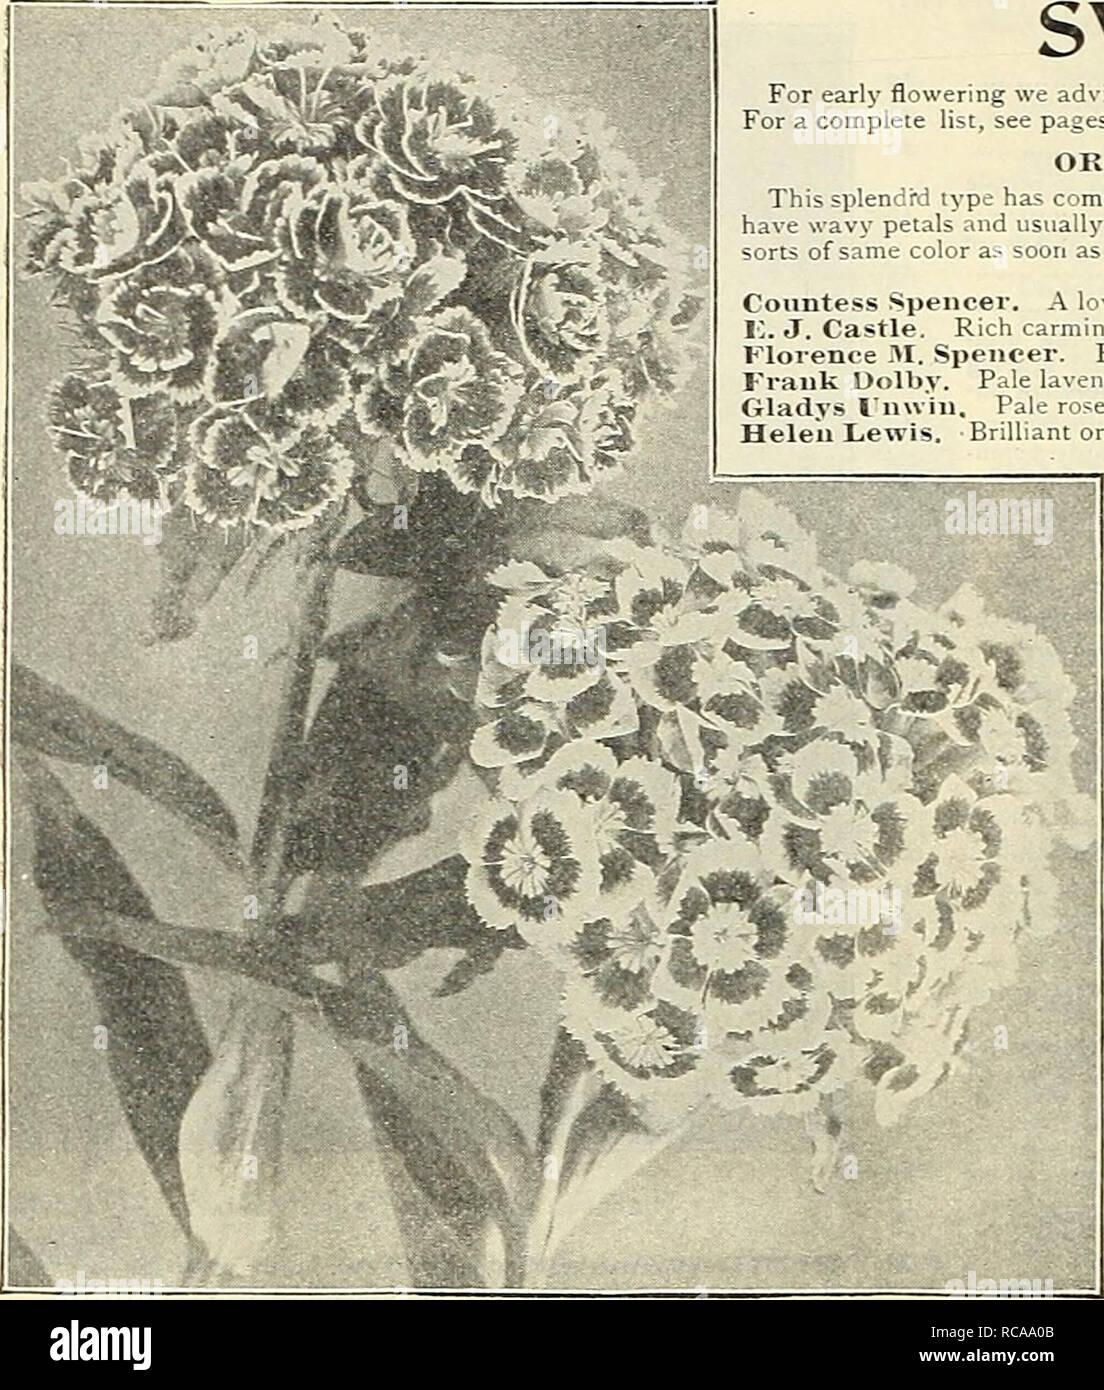 """. Dreer's 1908 autumn catalogue. Bulbs (Plants) Catalogs; Flowers Seeds Catalogs; Gardening Equipment and supplies Catalogs; Nurseries (Horticulture) Catalogs; Fruit Seeds Catalogs; Vegetables Seeds Catalogs. ro RTADRKR -PHIlAKLPHIAMlif RELIABLE FLOWERSEEDS. SWEET PEAS. For early flowering we advise autumn planting ; sow about the end of October in this latitude. For a complete list, see pages 78 and 120 of our Garden Book for 1908. OKCHID-T-LOWEKEO VARIKTIKS. This splendi""""d type has come to stay. They are distinguished for their ver^- large flowers which have wavy petals and usually born Stock Photo"""